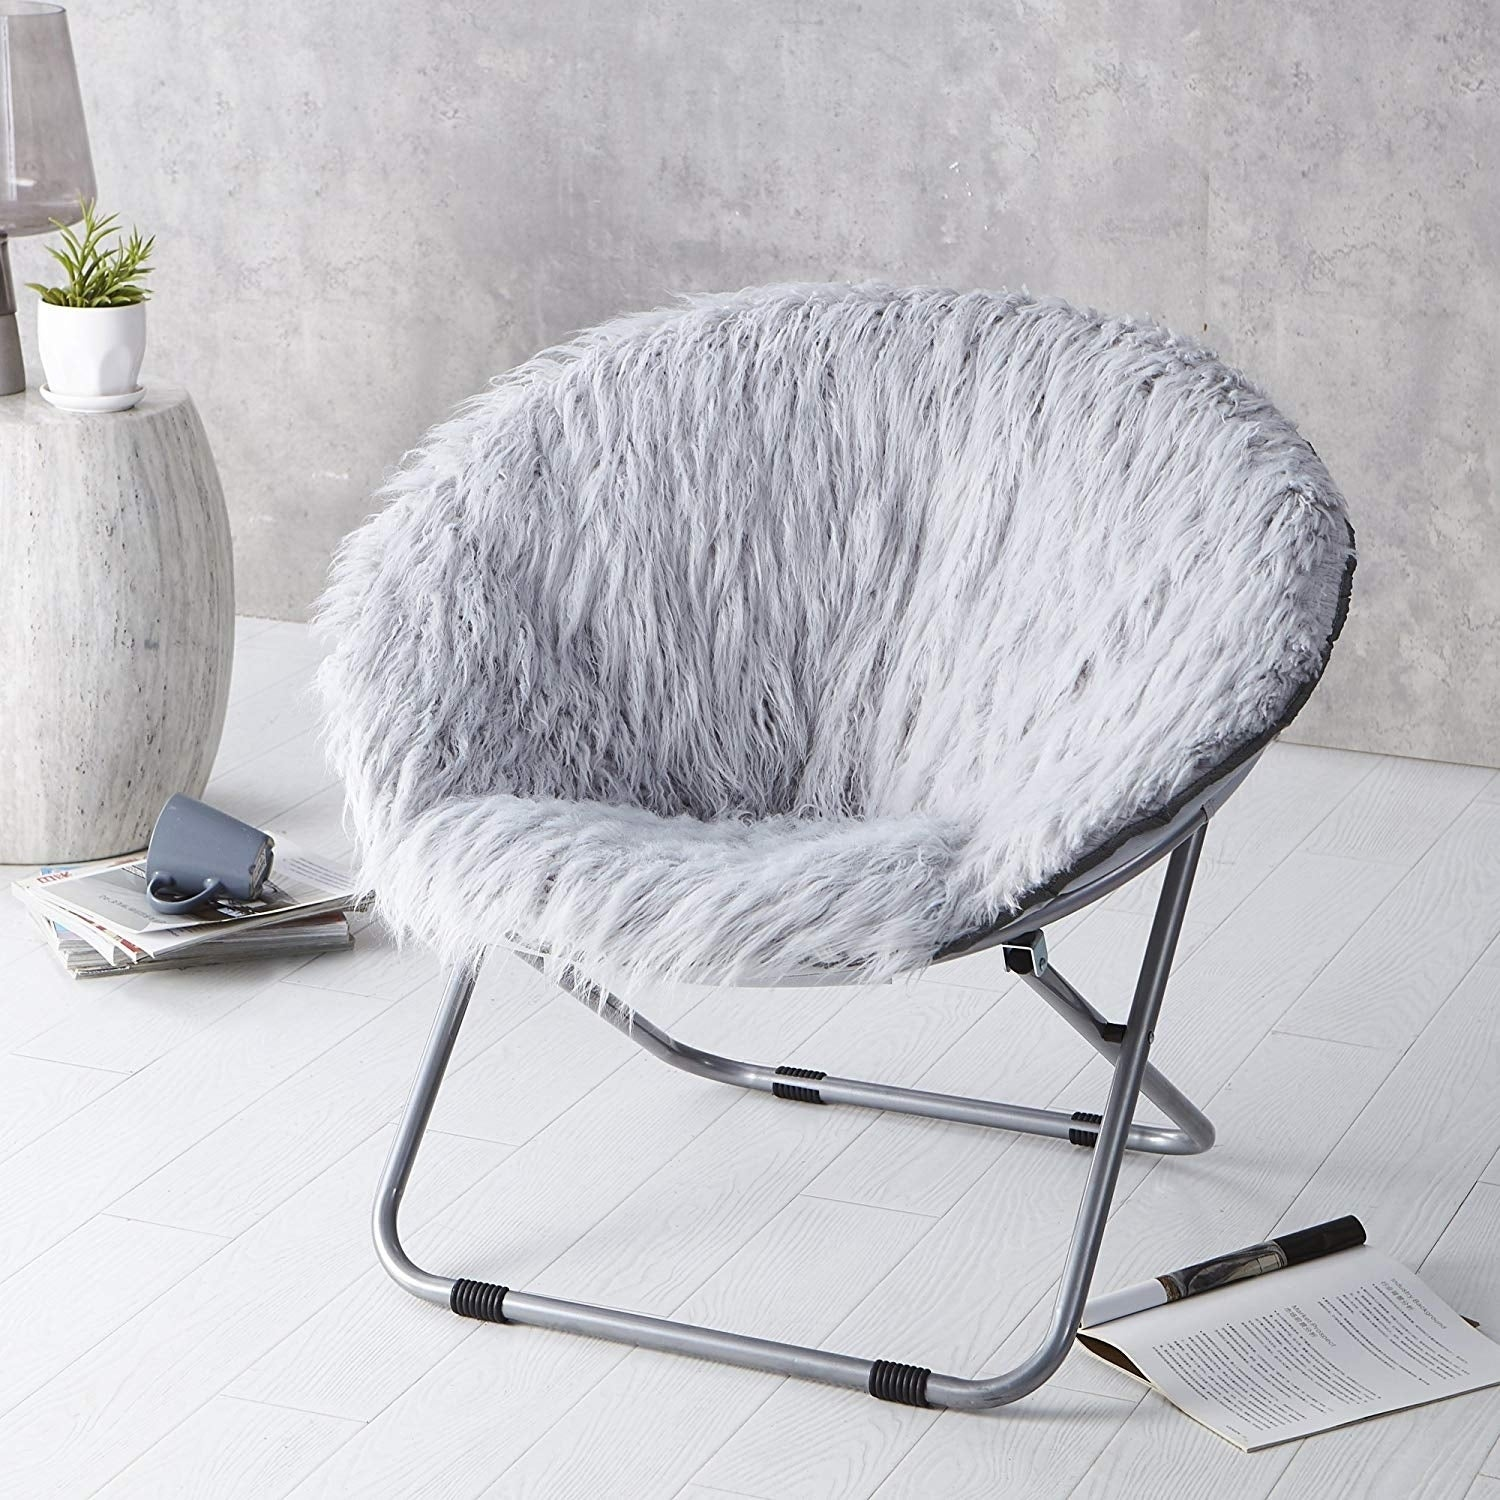 Faux Fur Moon Chair Glacier Gray Overstock 22464412